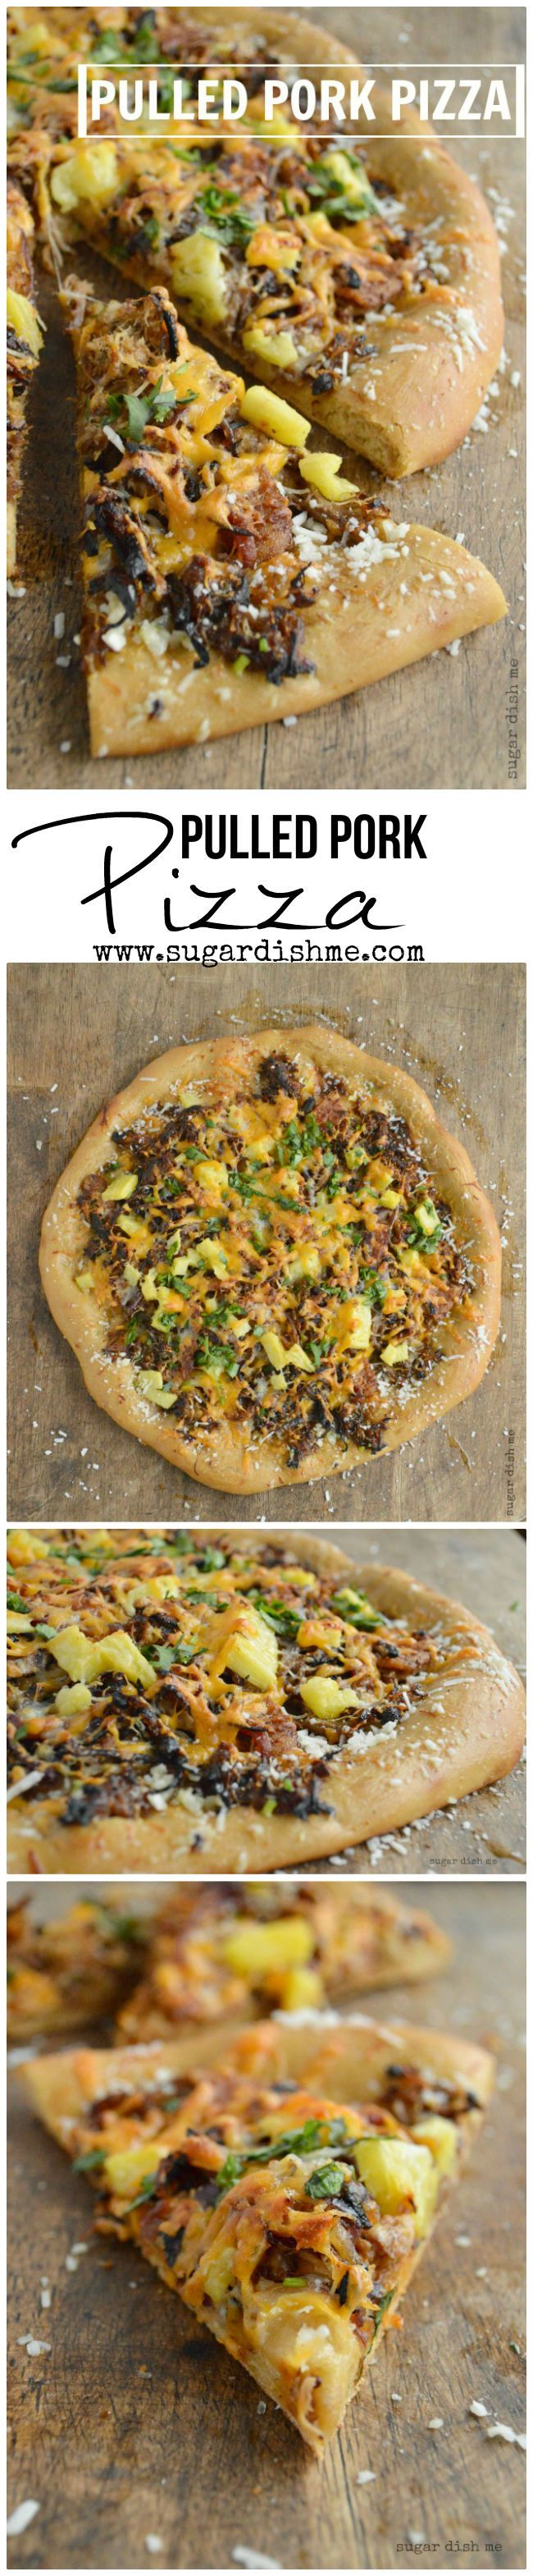 Pulled Pork Pizza  A Copycat Mellow Mushroom Pizza Crust topped with caramelized onions, Apple Butter Pulled Pork, bacon, pineapple, and 3 kinds of cheese. This Pulled Pork Pizza is restaurant quality from the dough to the toppings, but is super simple to make at home! The pork and the dough can both be made ahead of time.